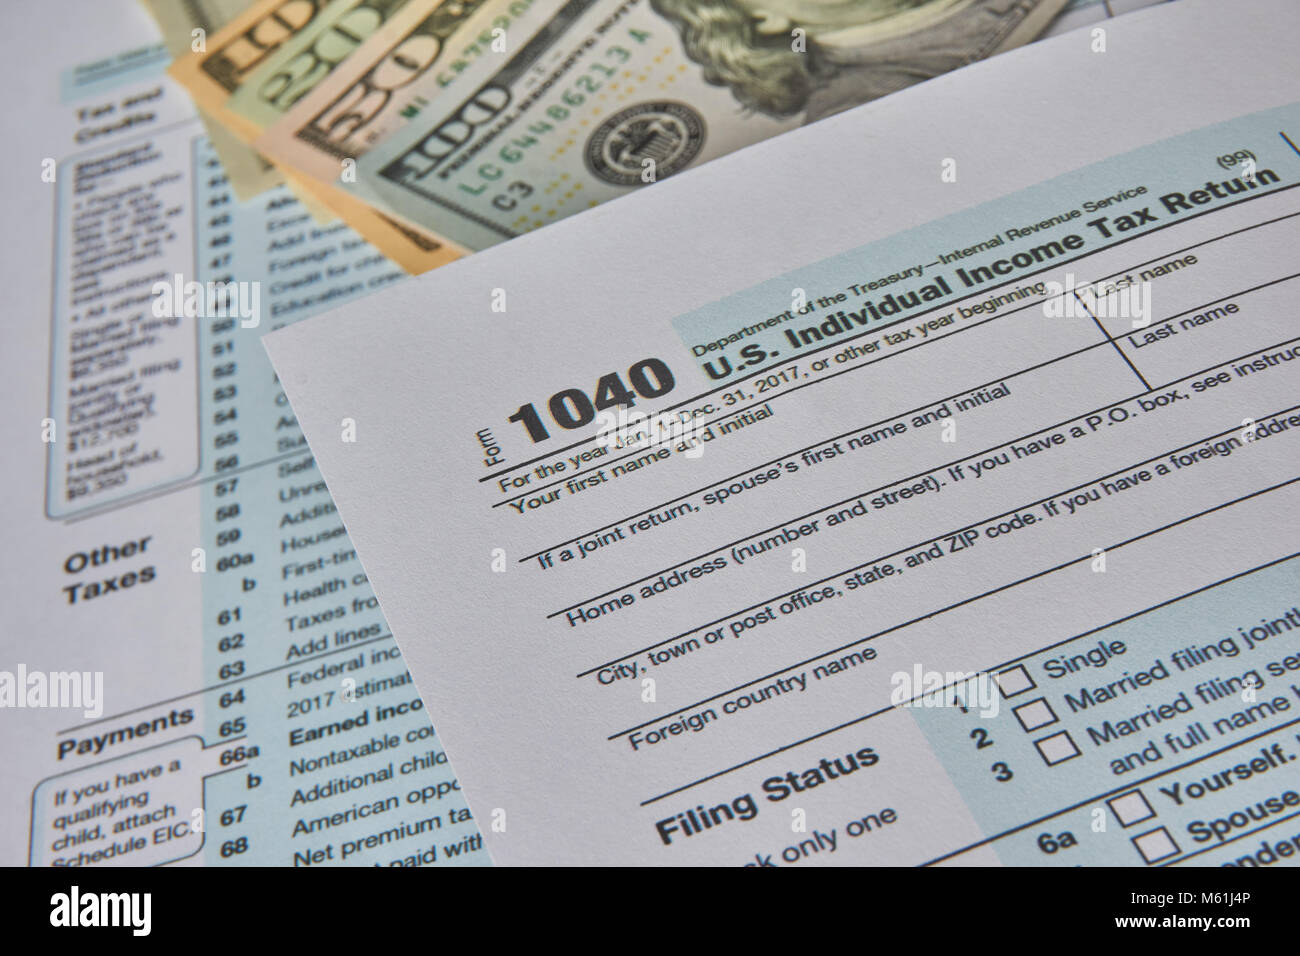 US tax form 1040 - Stock Image